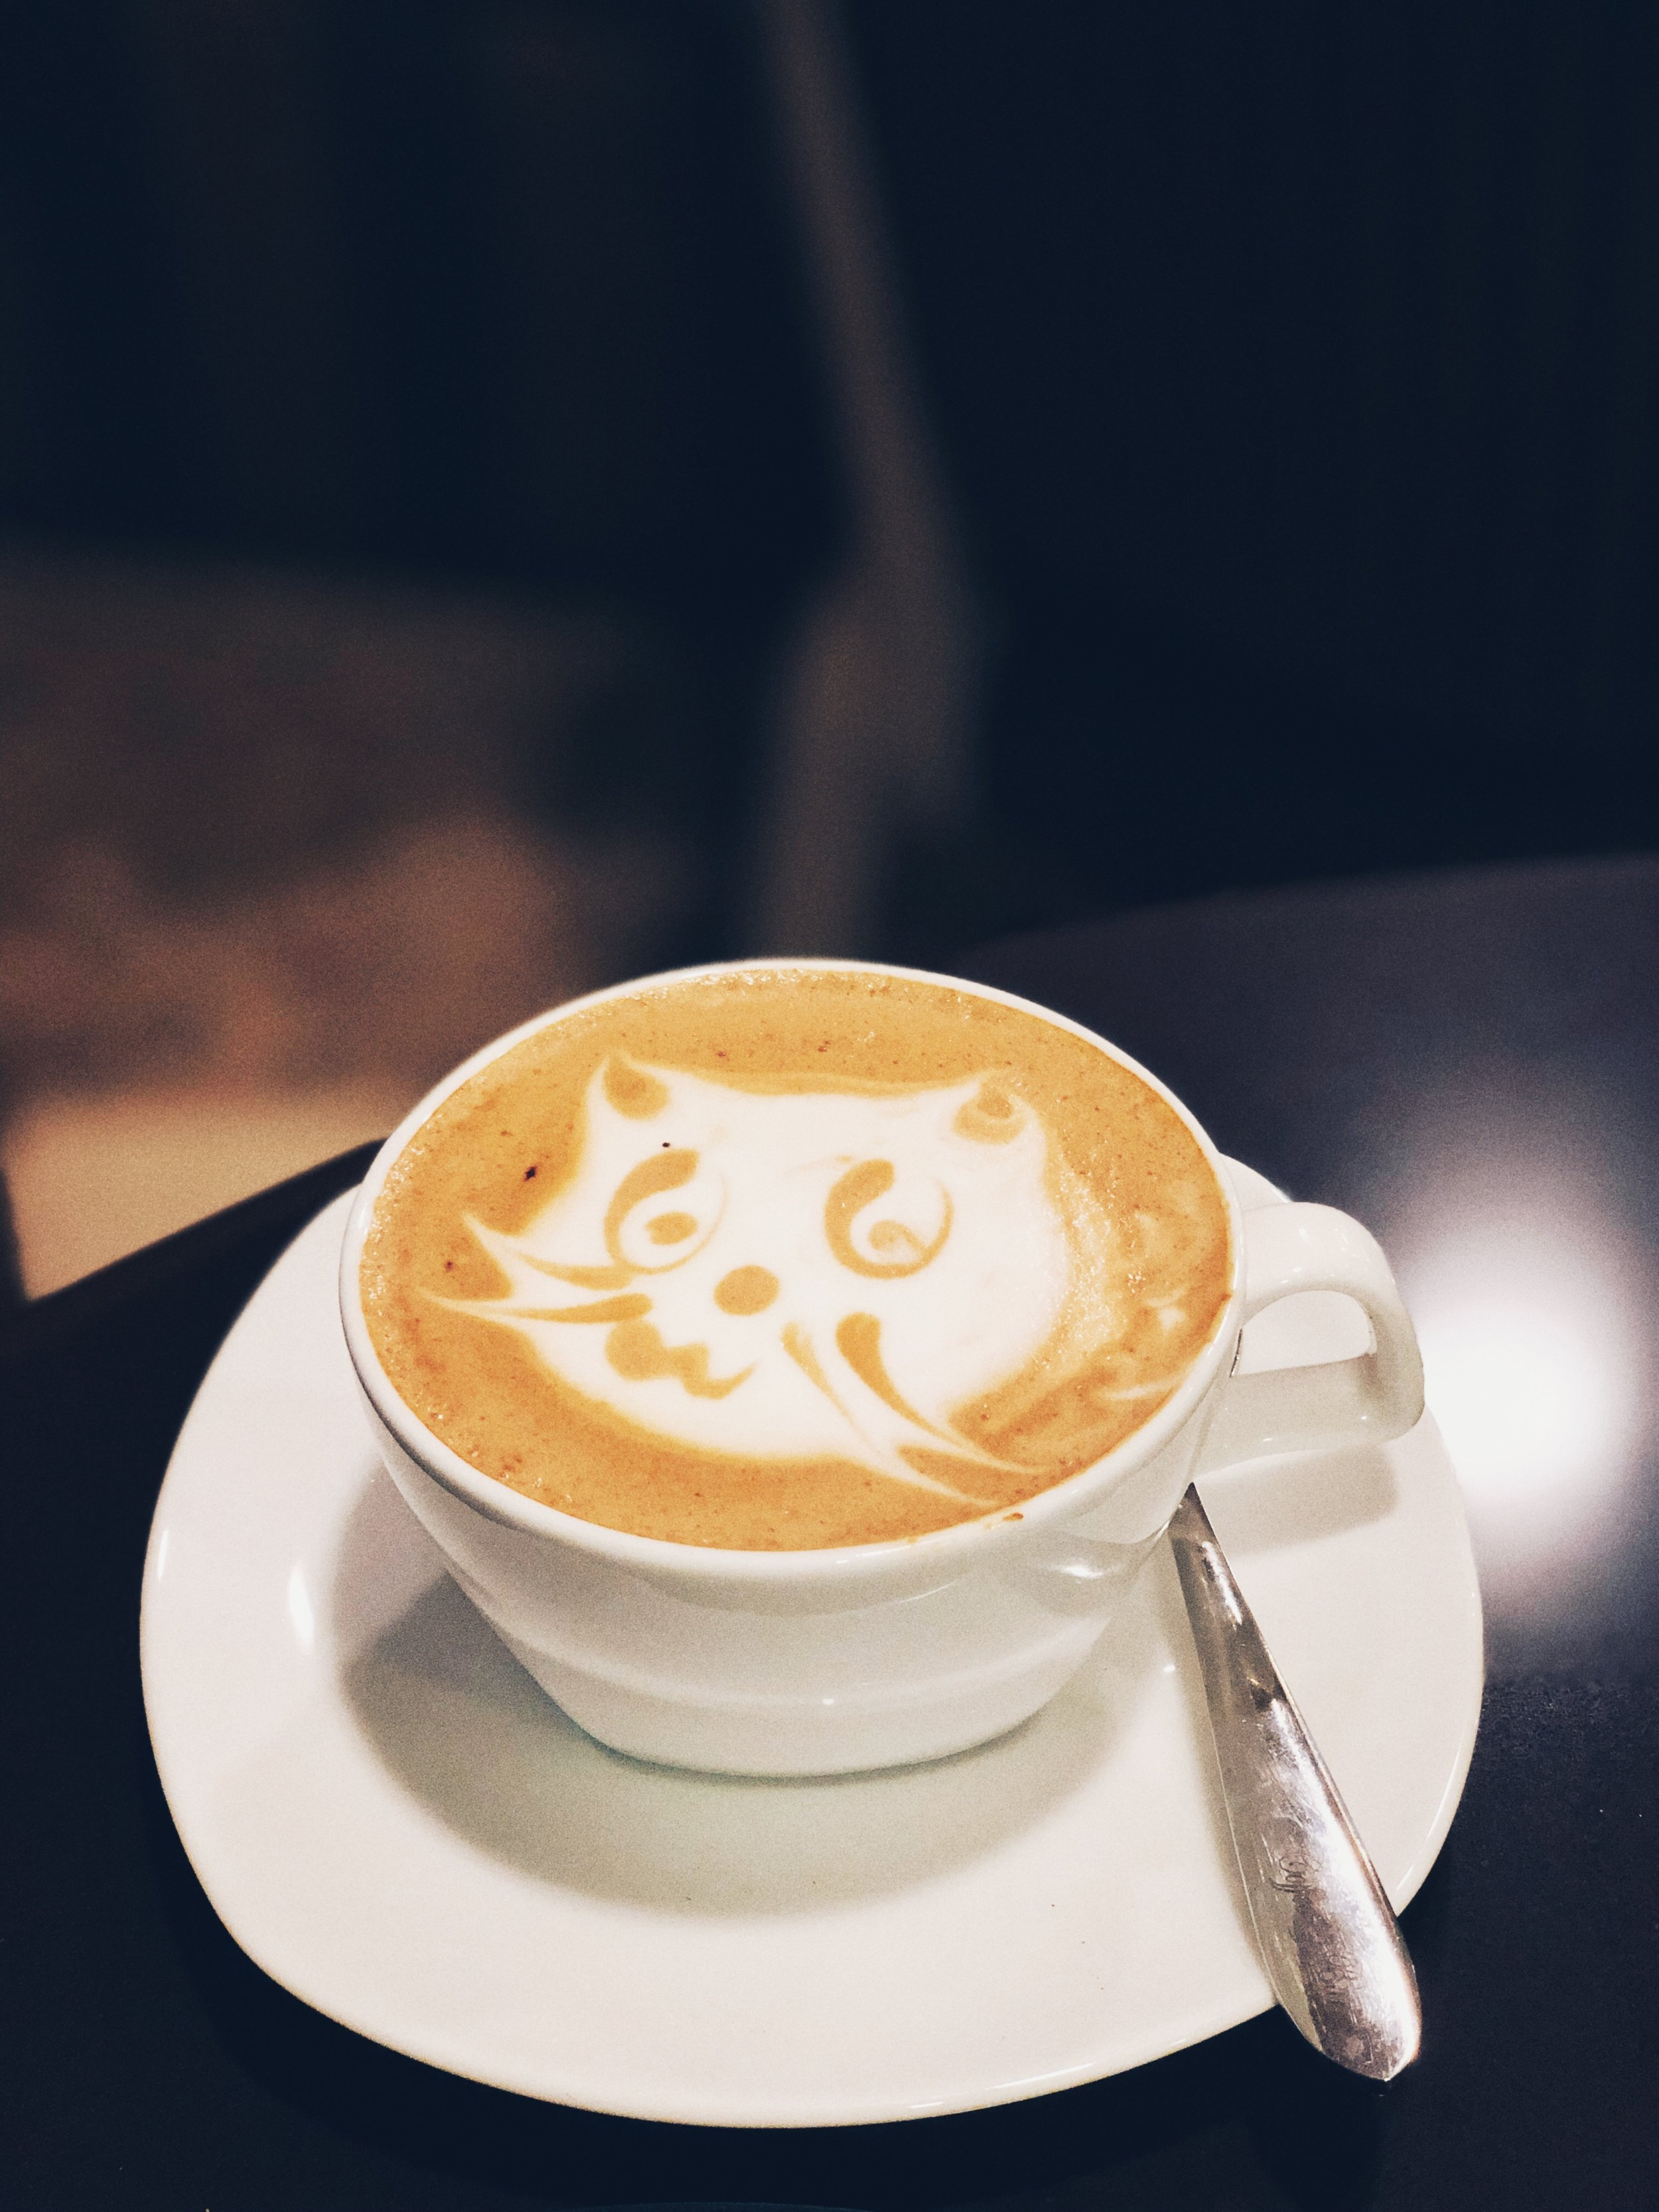 This latte is literally the cats whiskers. The attention to detail here is amazing! You can even see the cat's little mouth smiling up at you before you take a sip; though it's almost too pretty to drink!